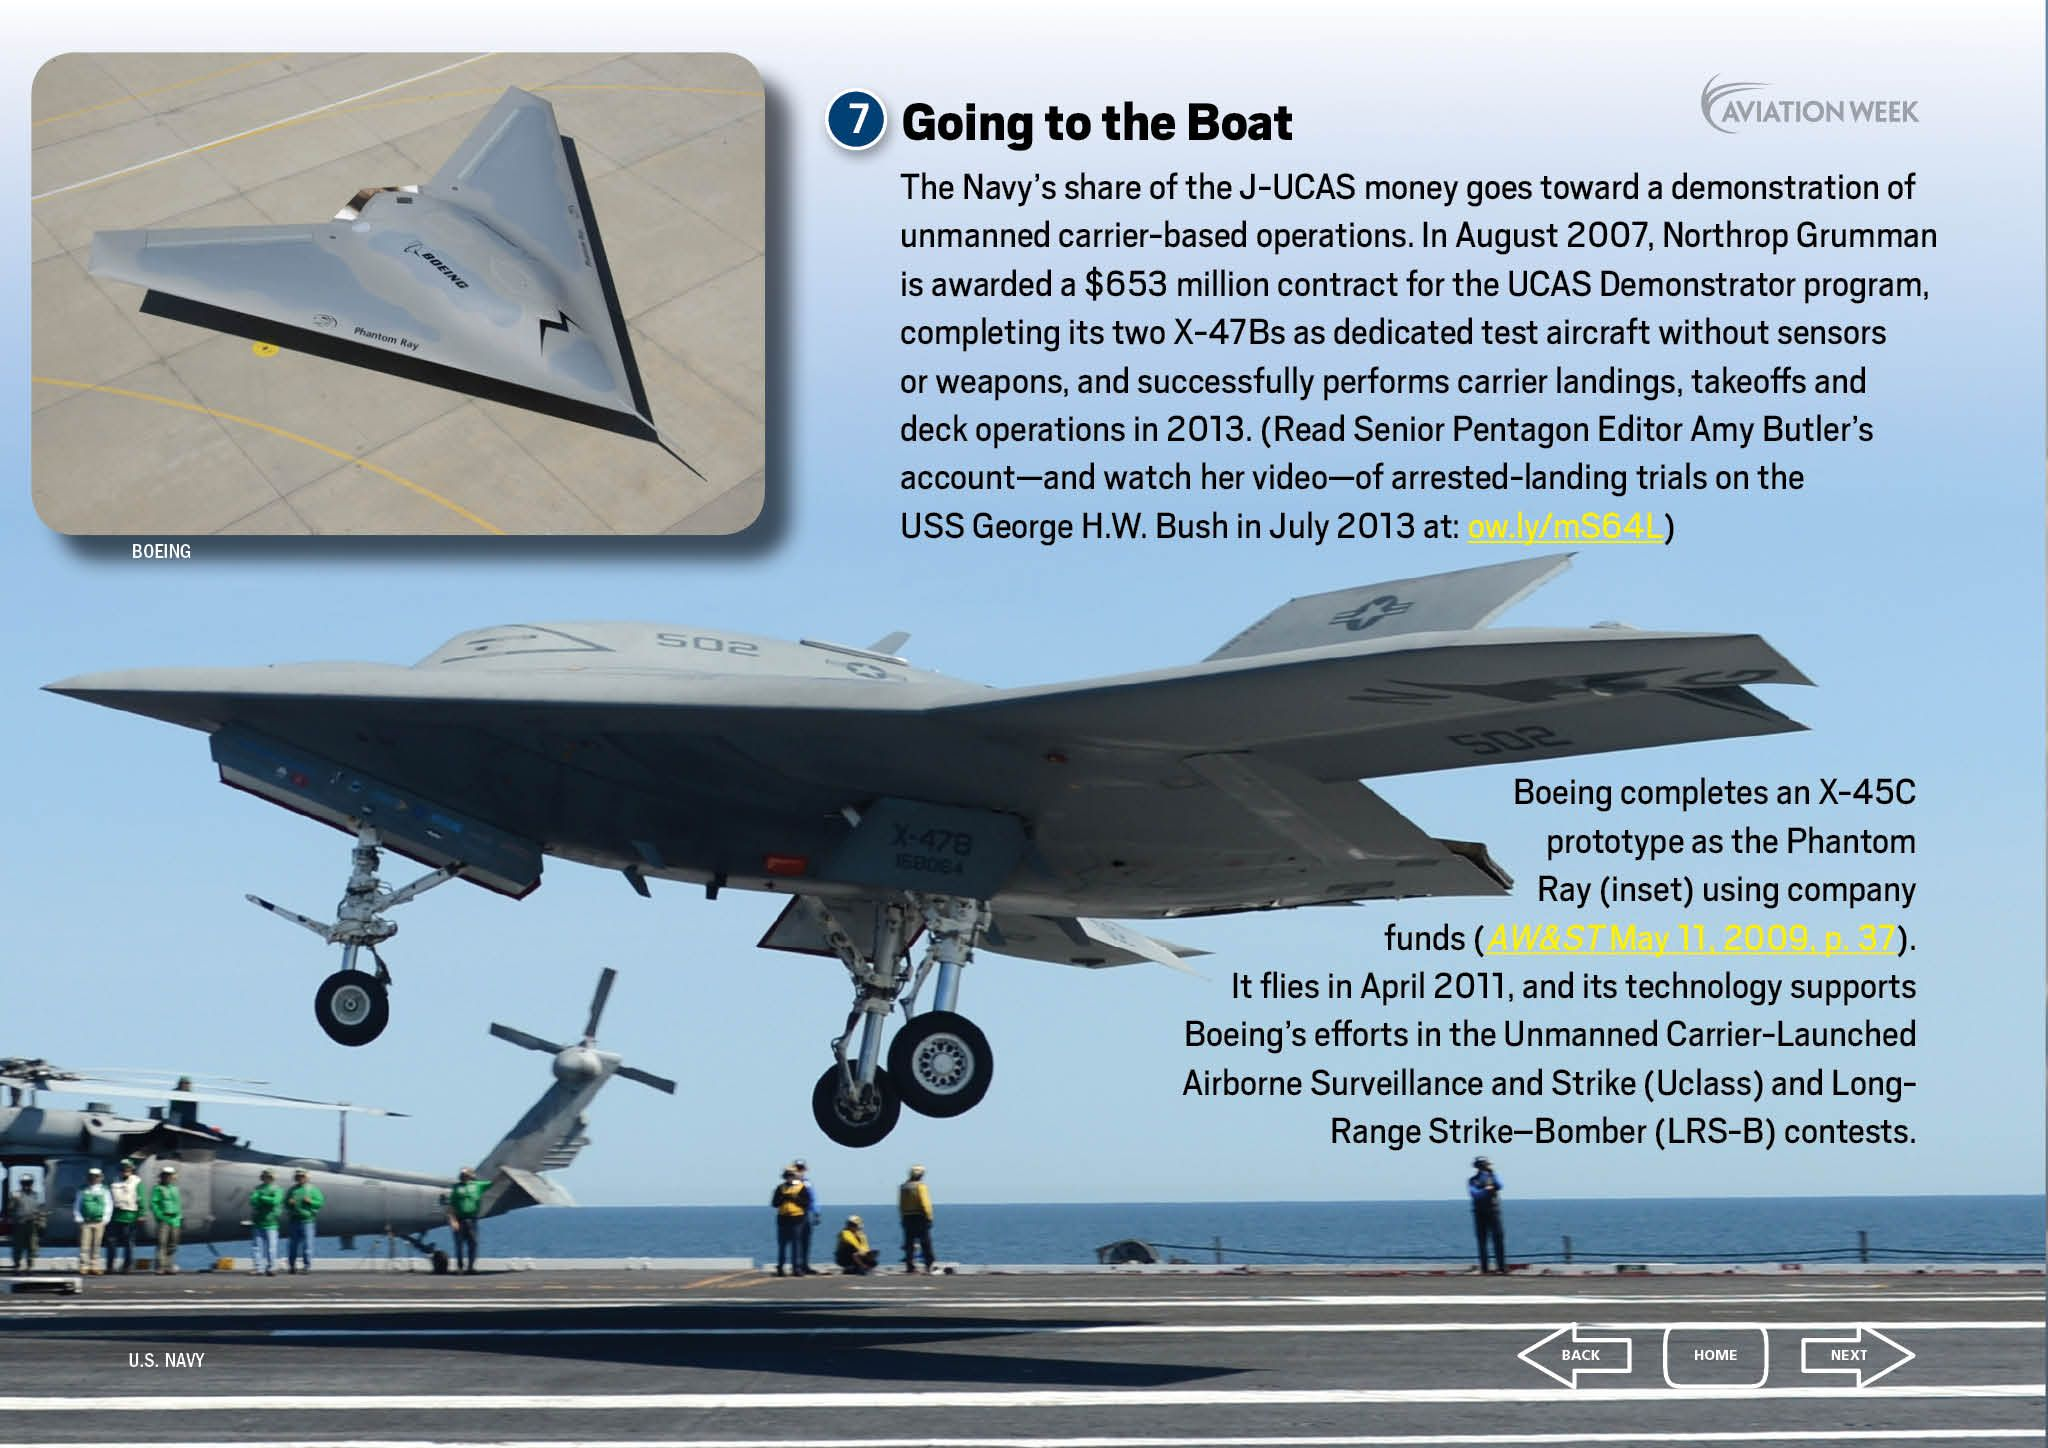 Stealth 7 - Graphic from Aviation Week & Space Technology